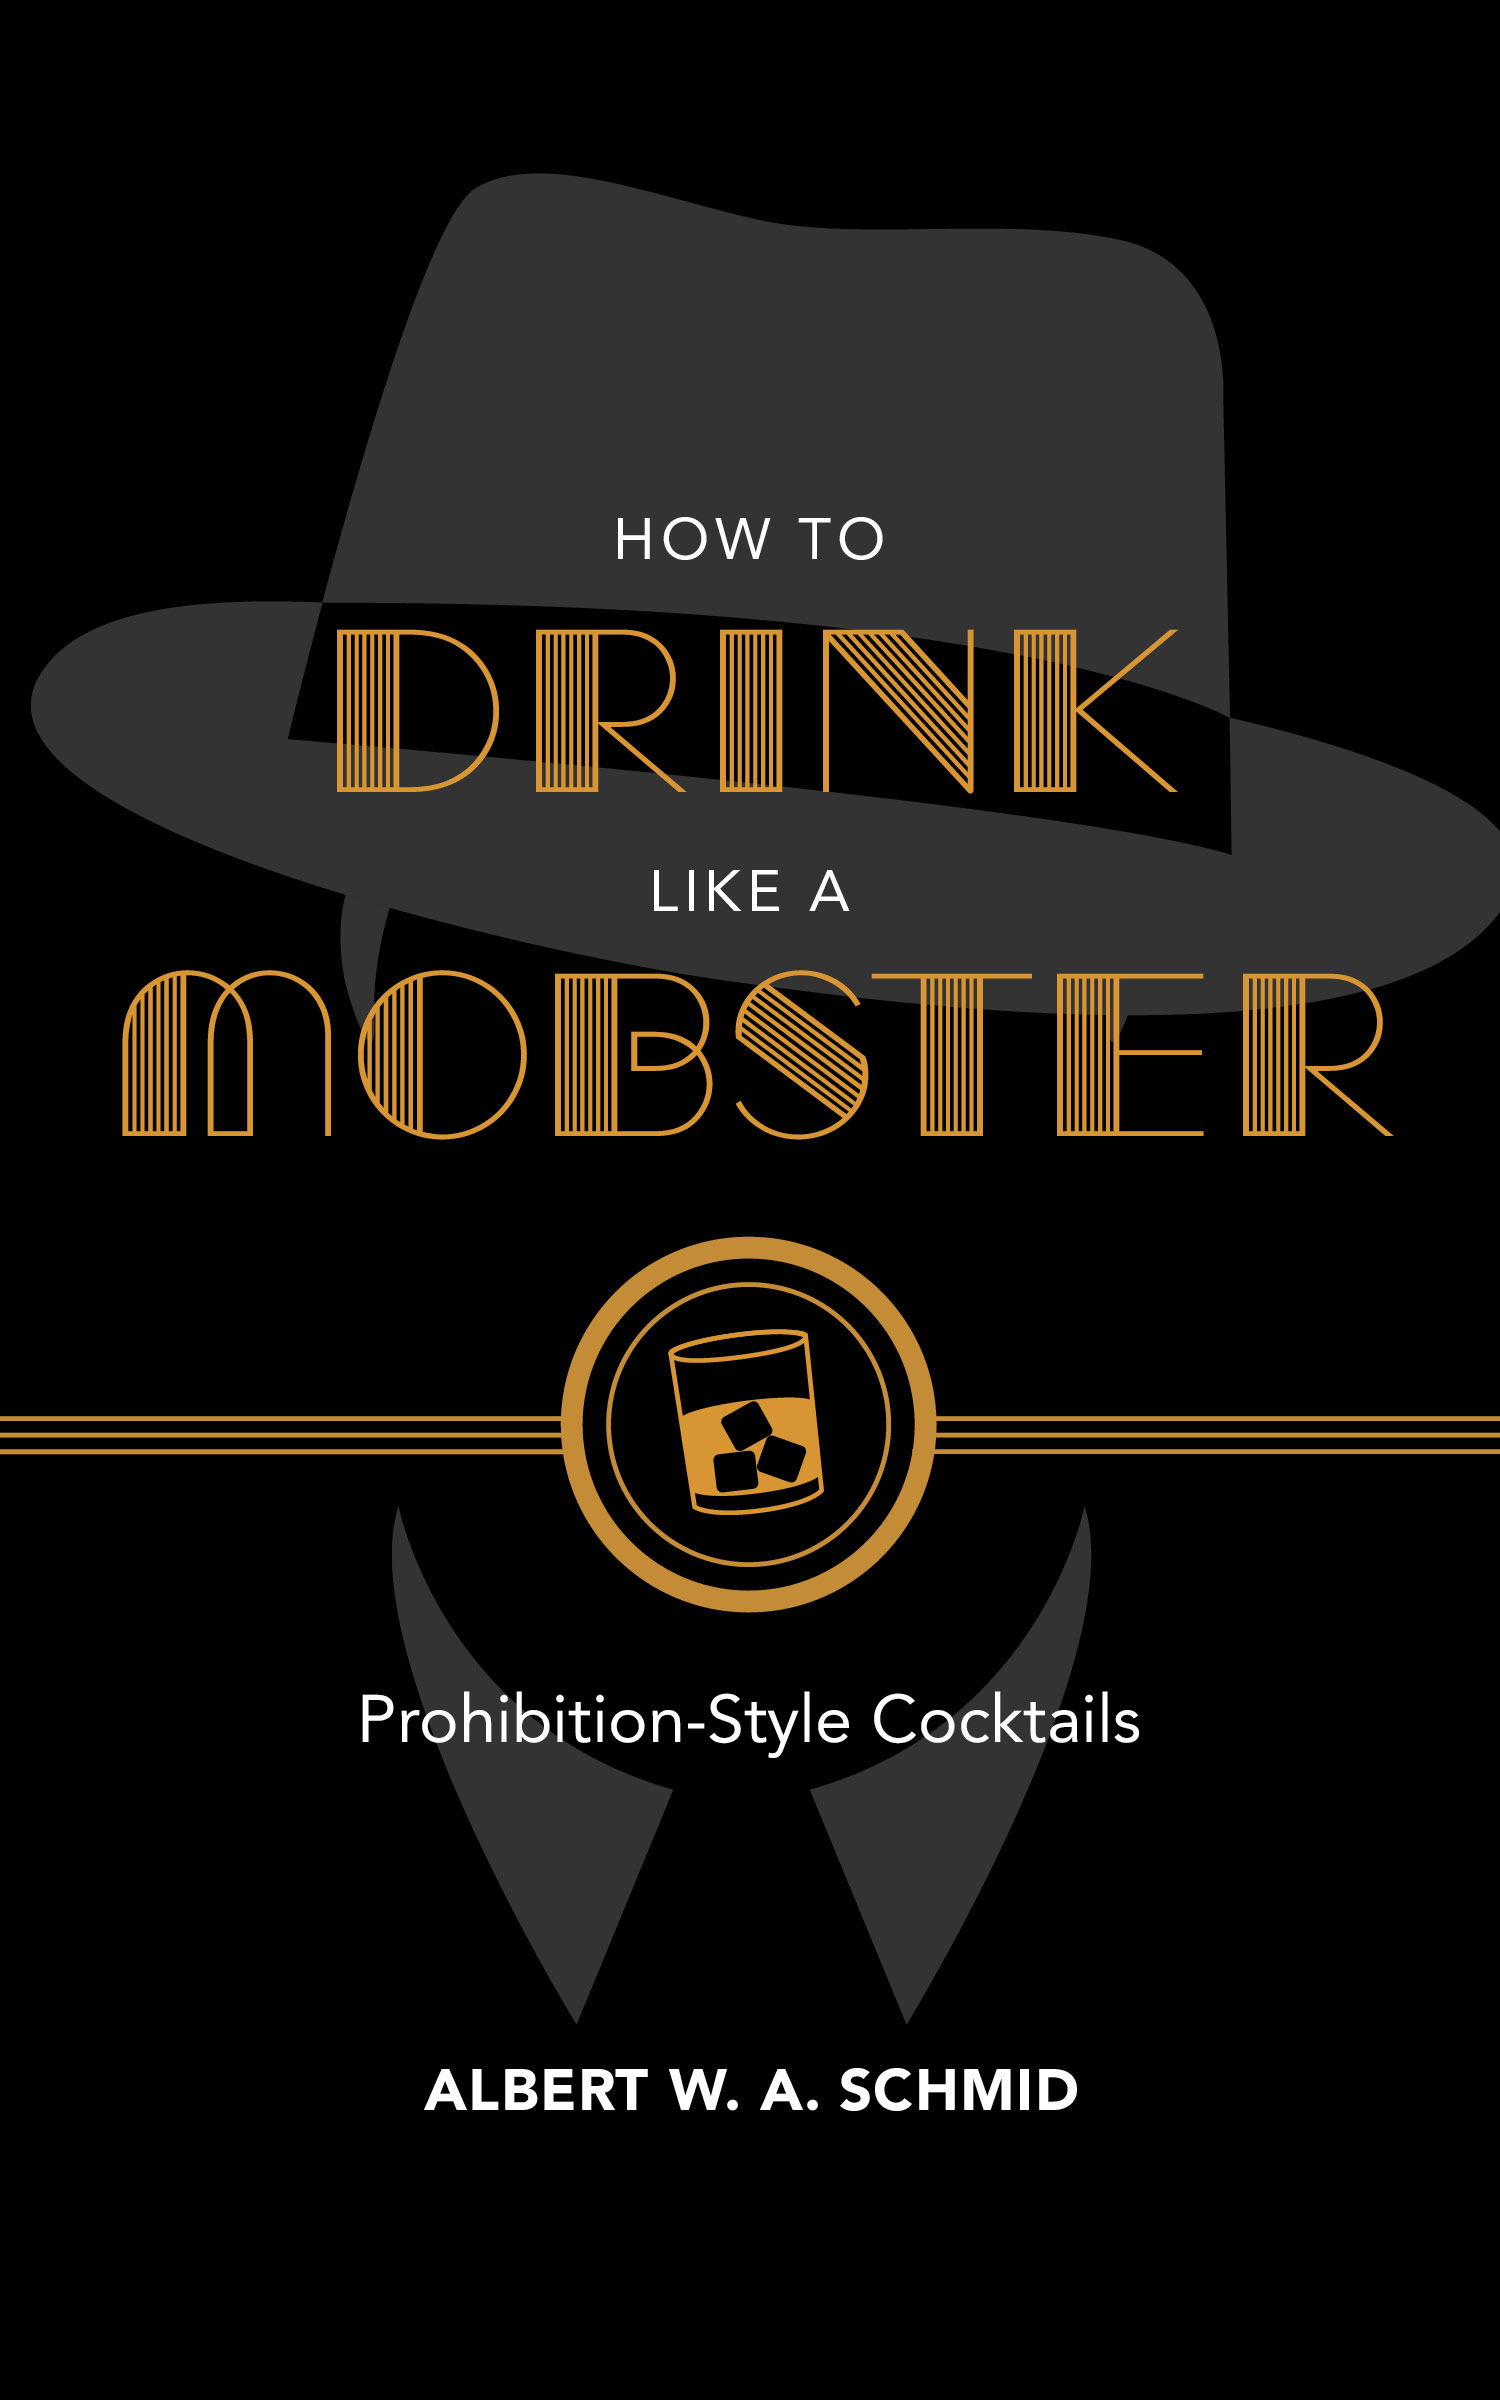 How to Drink Like a Mobster Prohibition-Style Cocktails